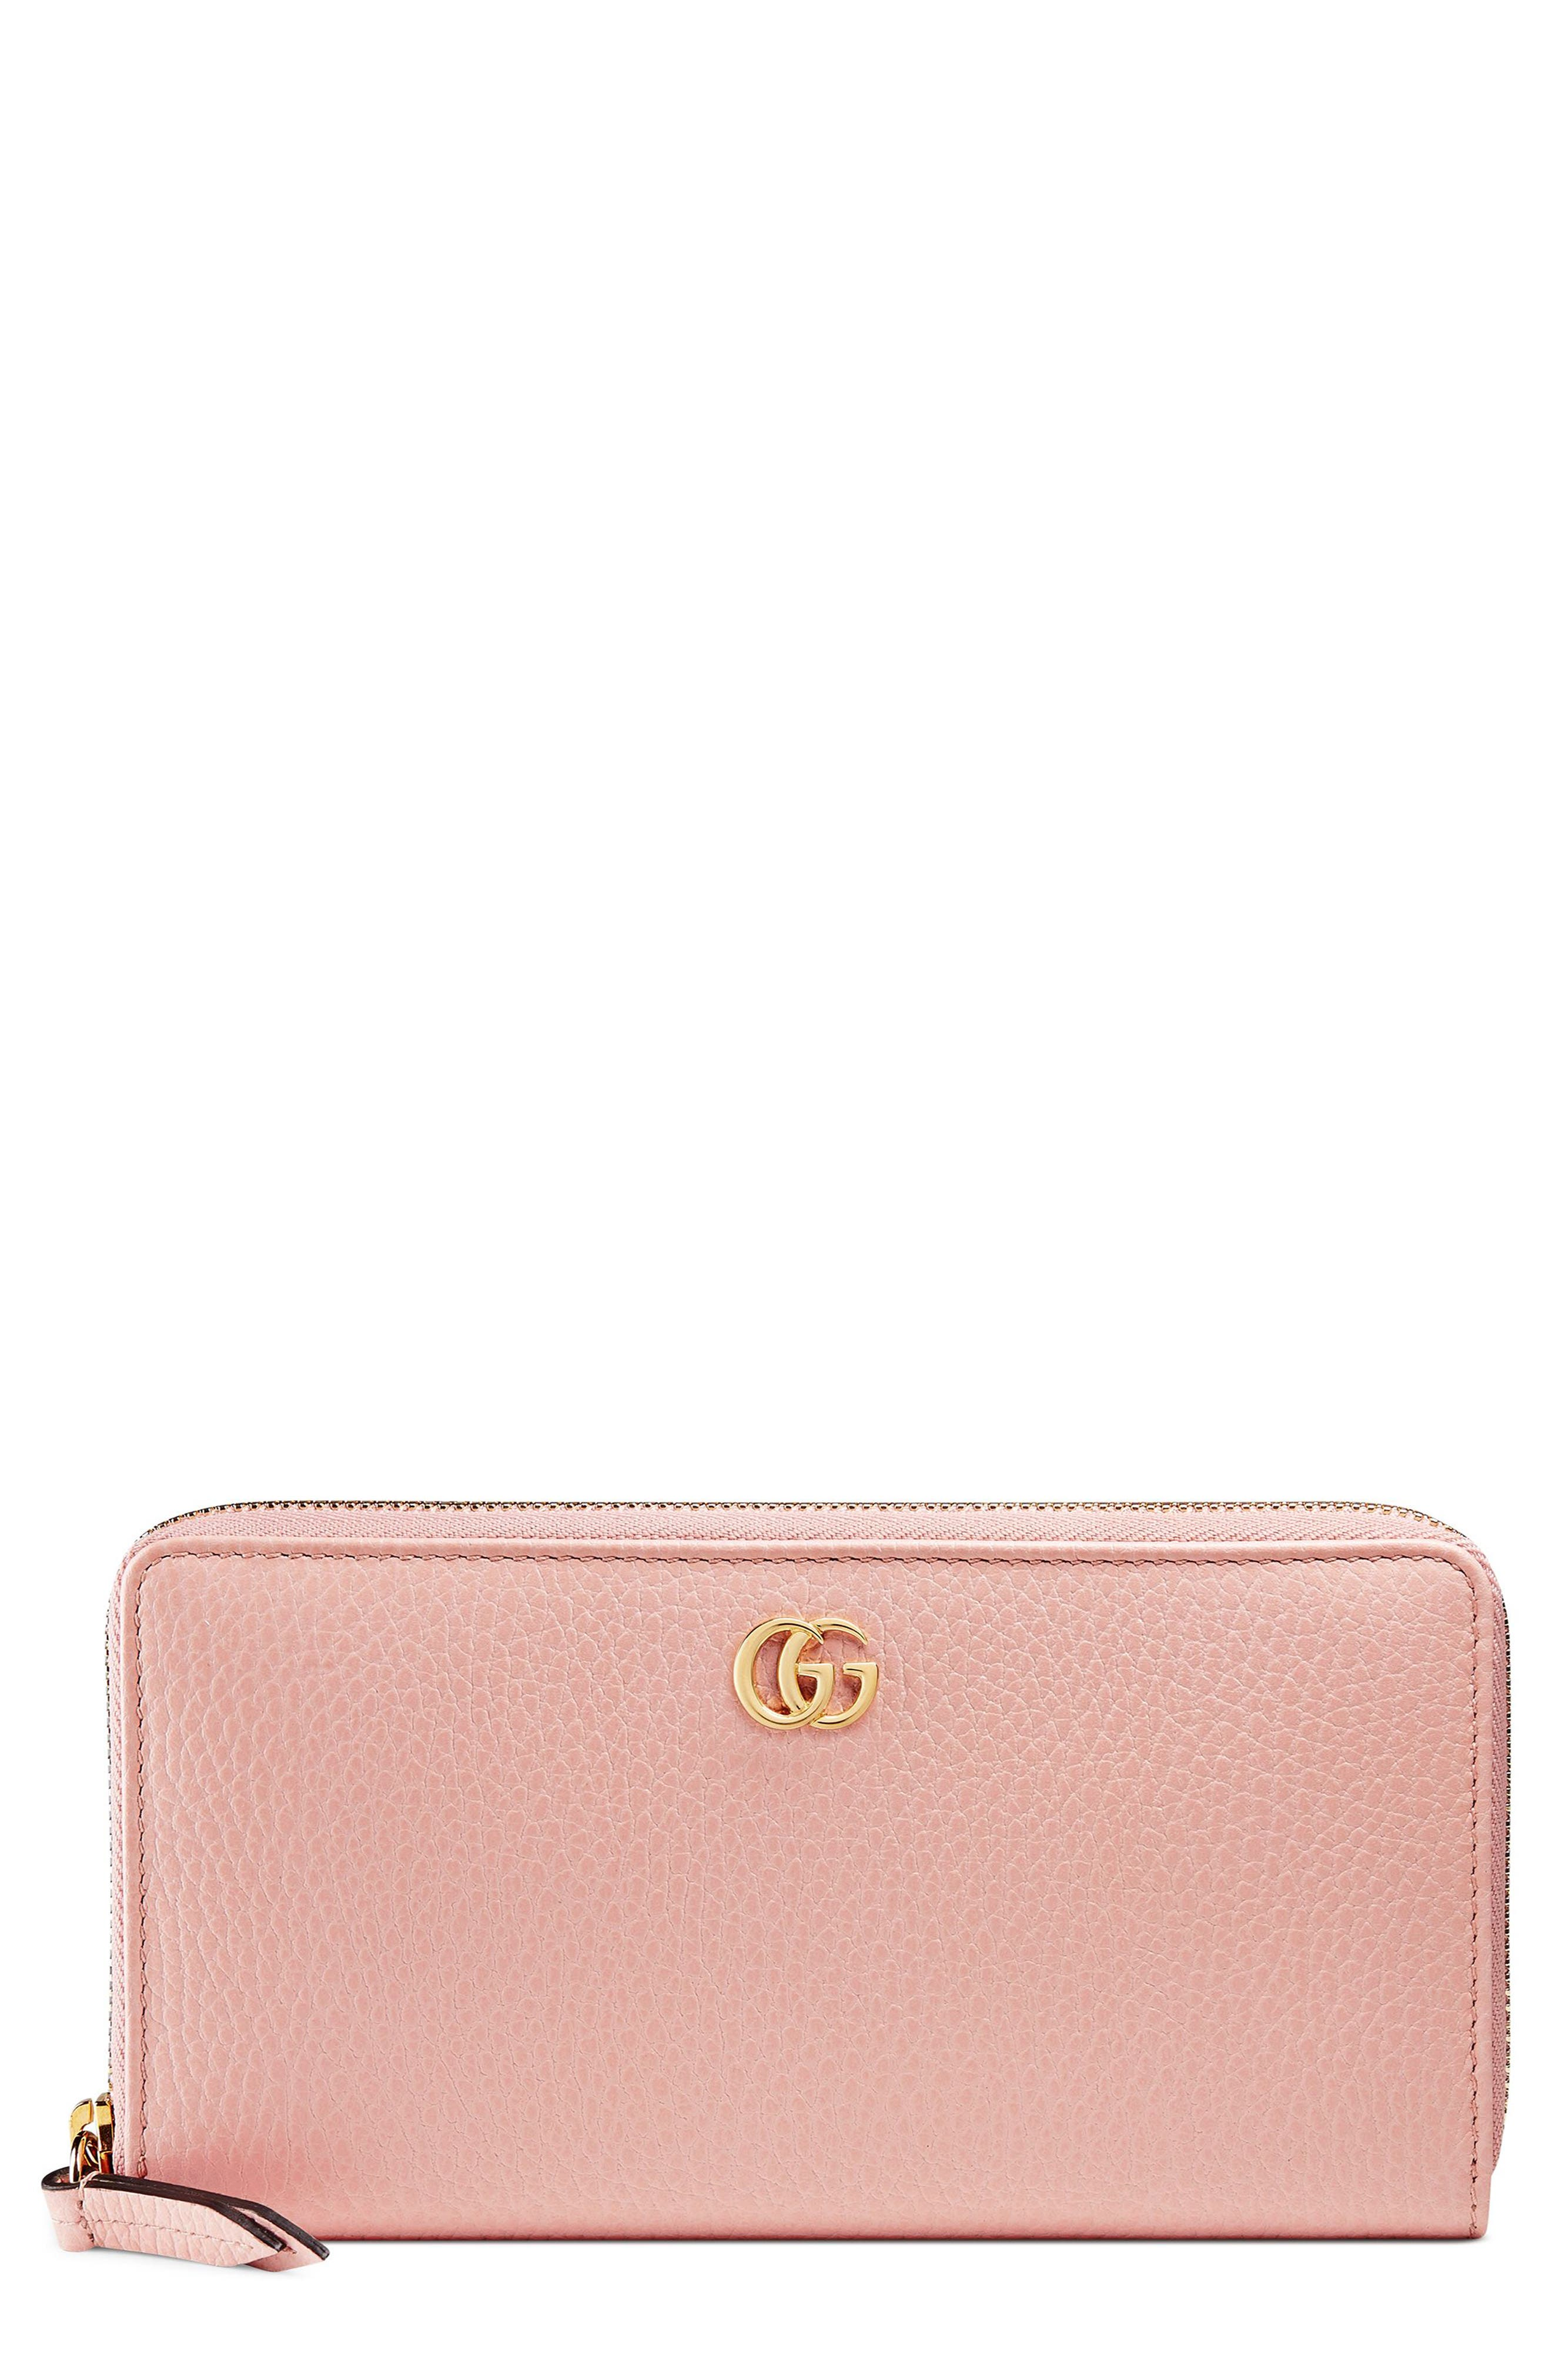 Petite Marmont Leather Zip Around Wallet,                             Main thumbnail 1, color,                             PERFECT PINK